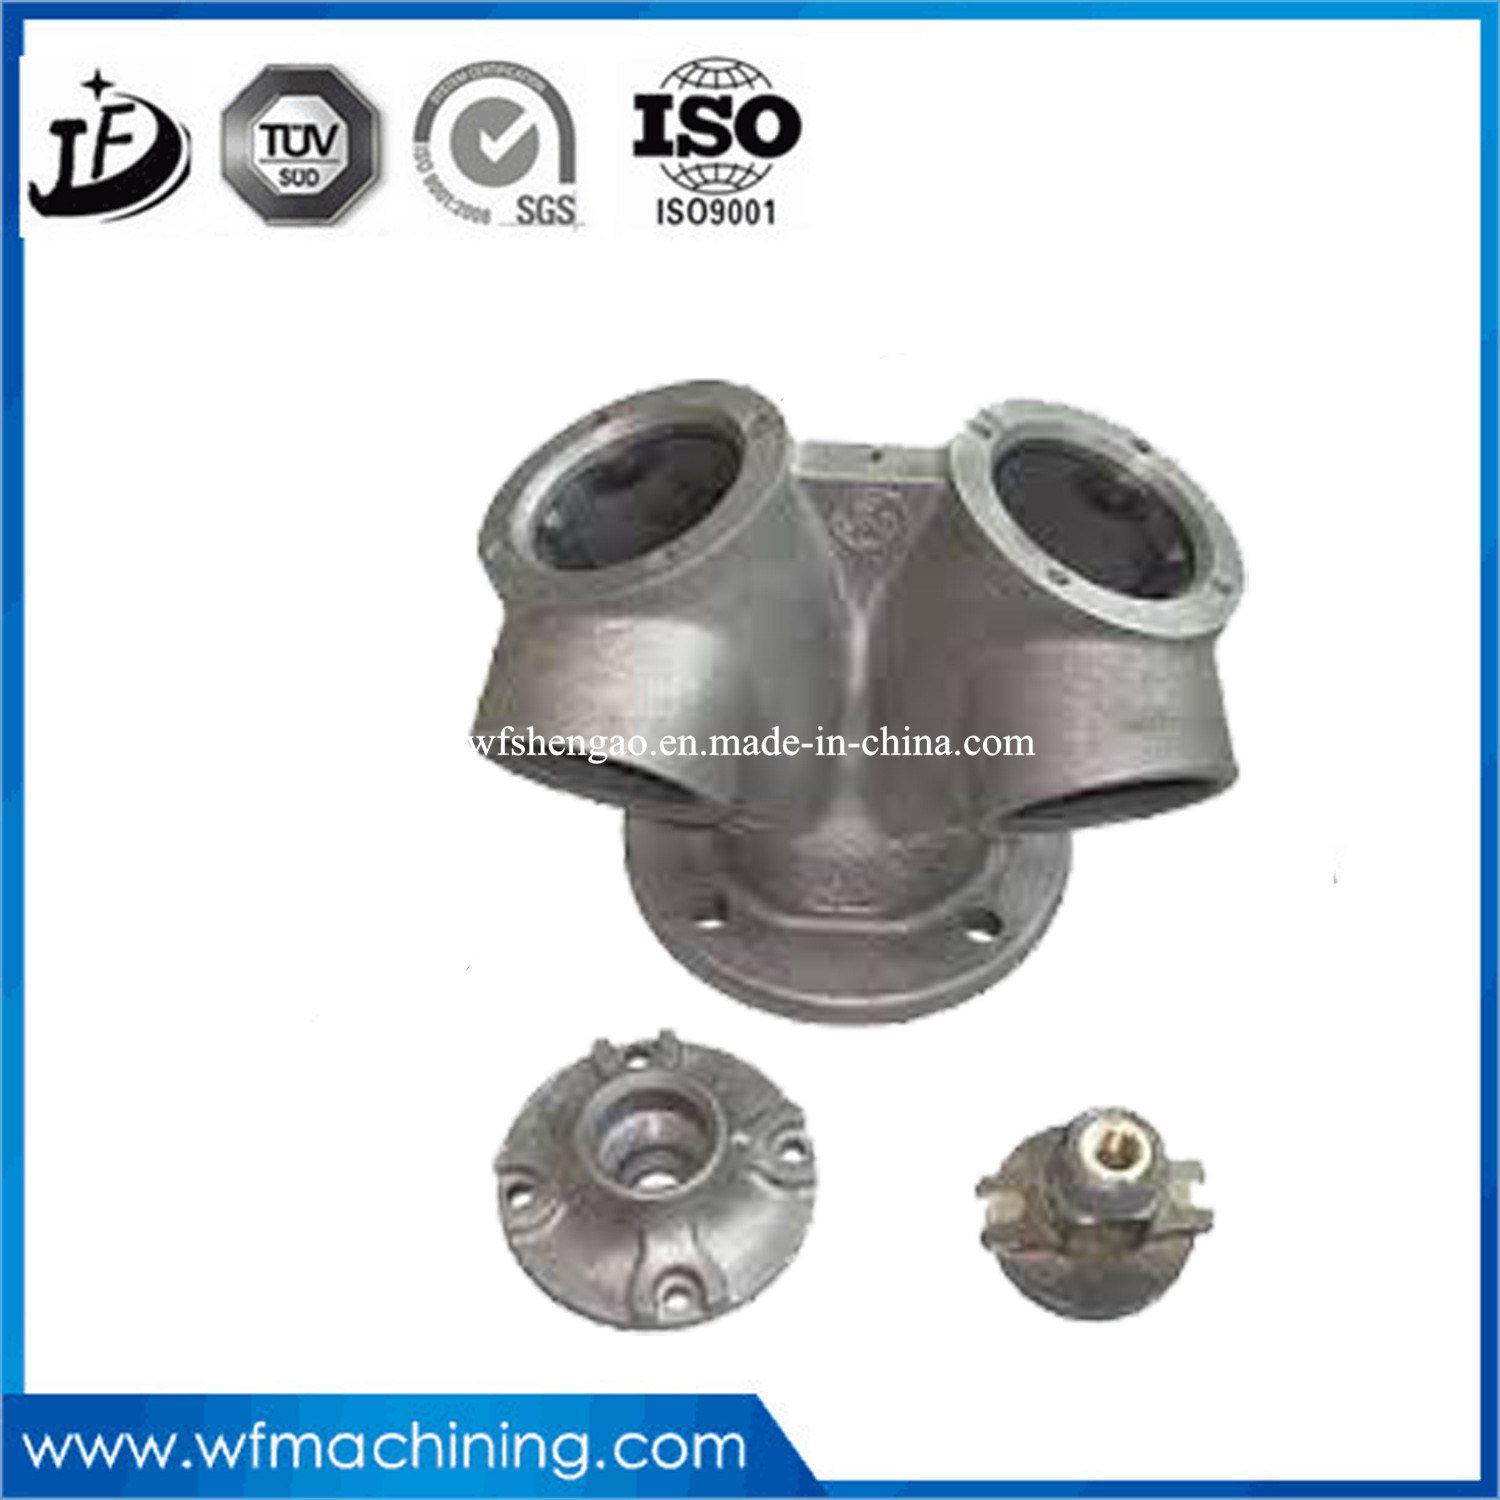 OEM Foundry Grey Iron & Ductile Iron Bend Elbow Tee Cross Iron Casting Pipe Fitting